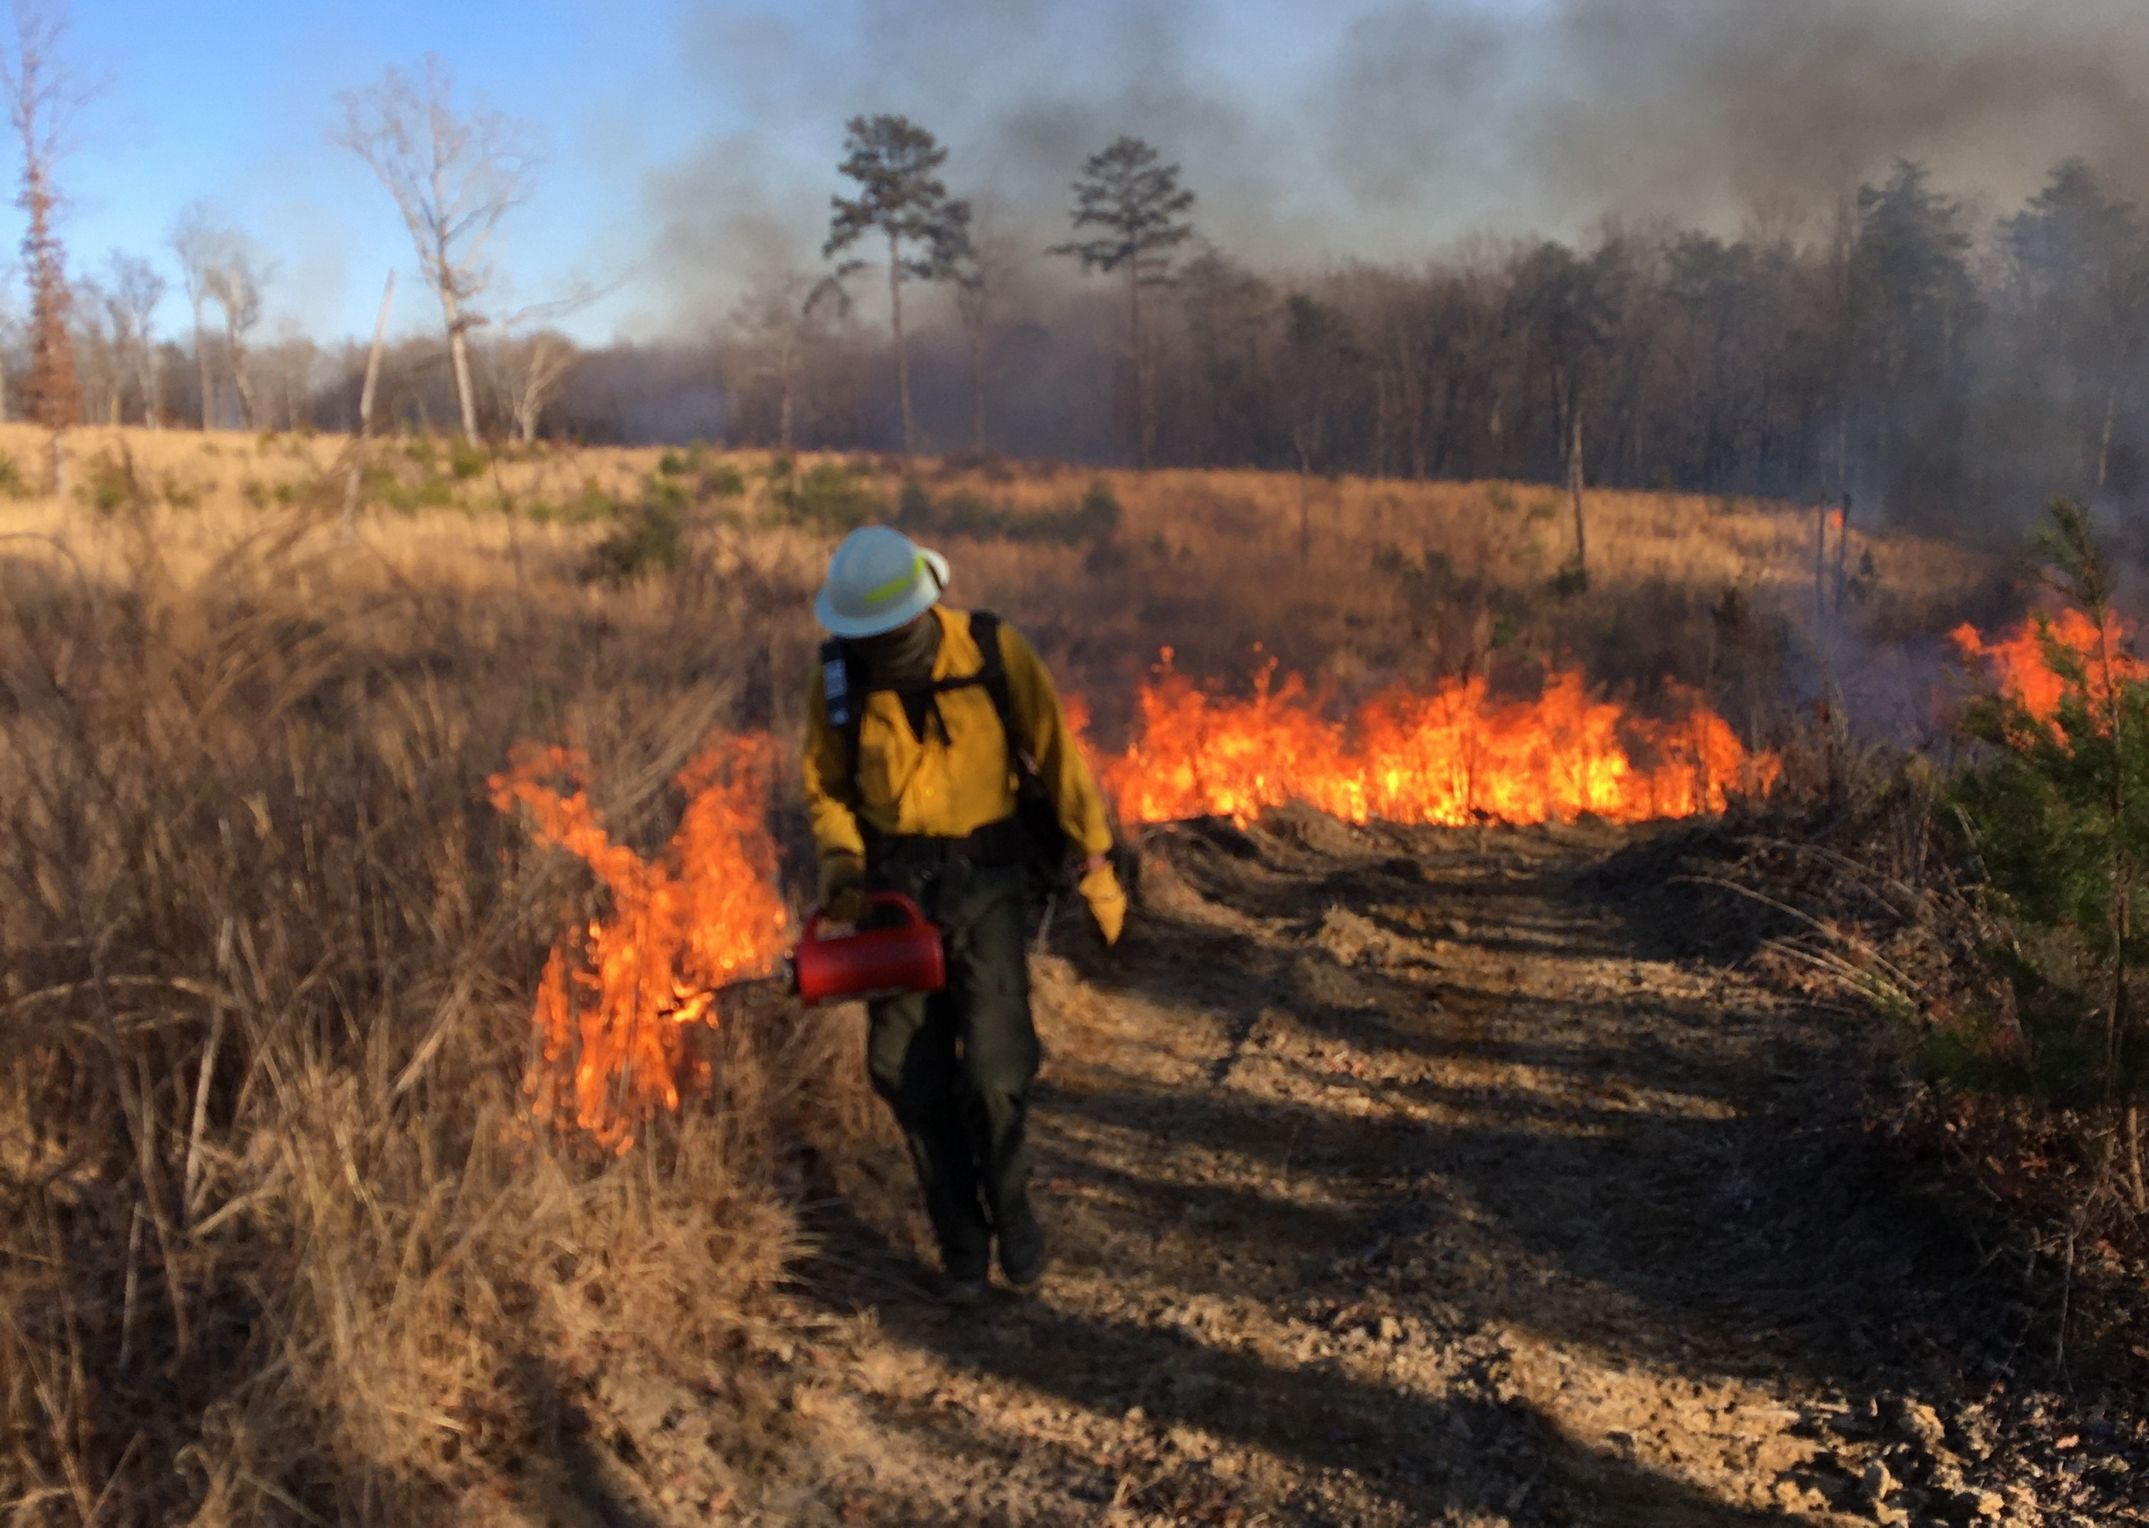 A staff member delivers fire to a portion of the preserve.